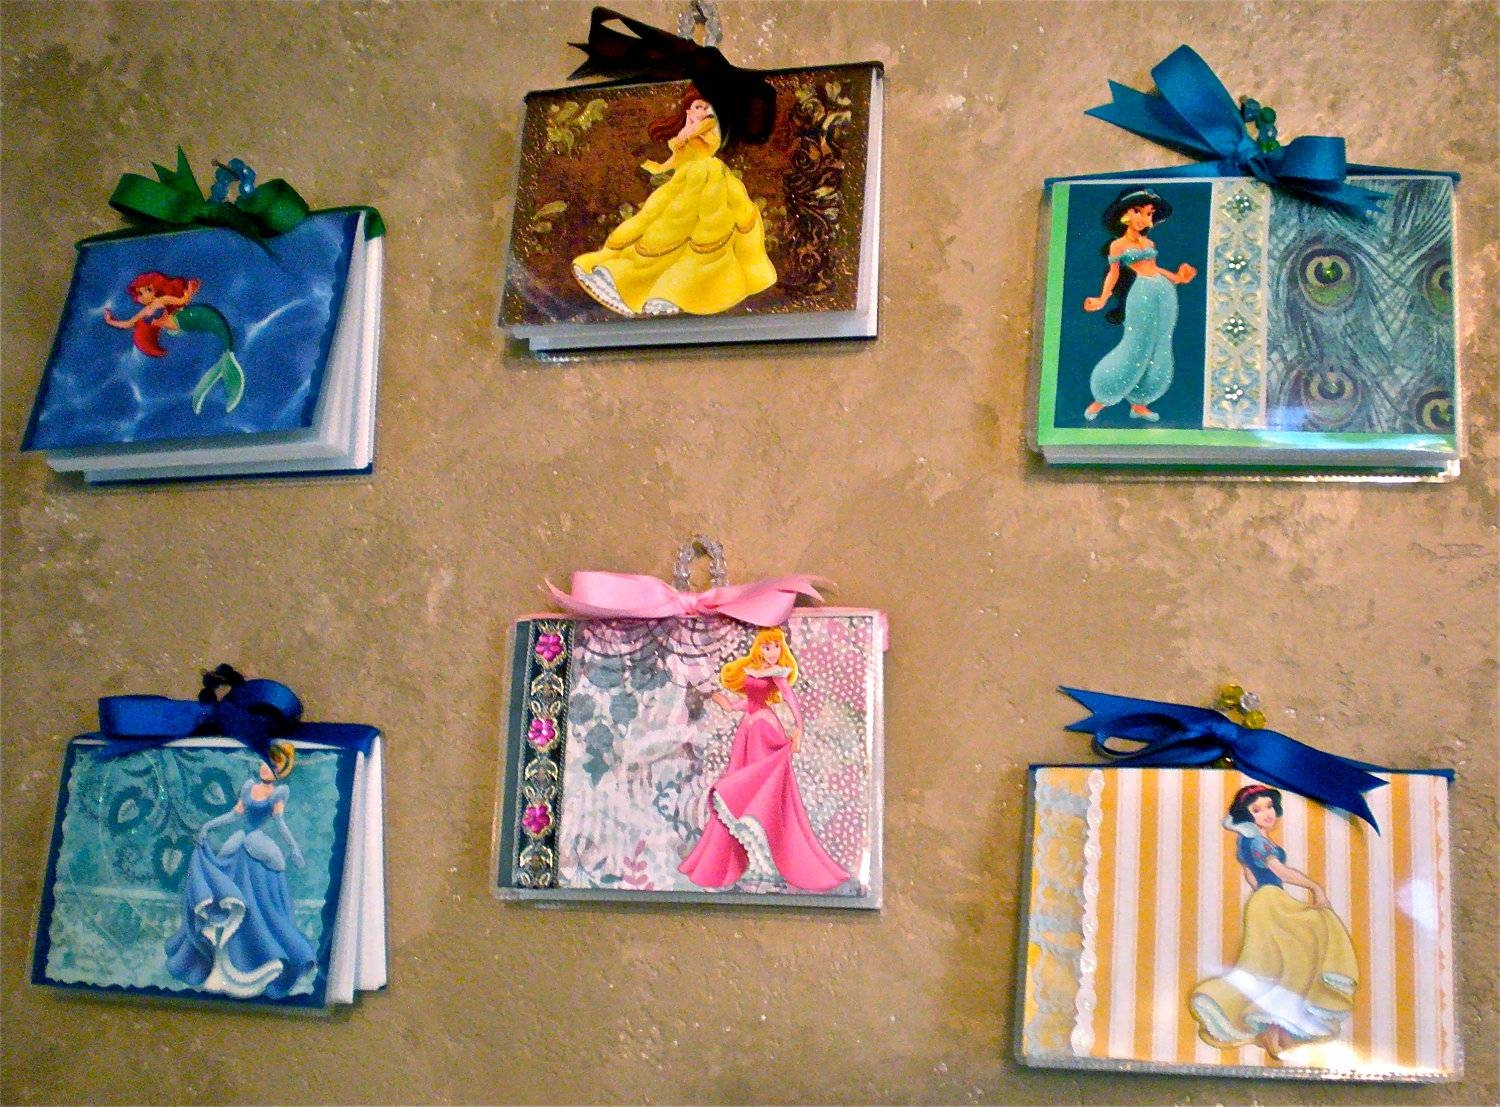 6 Disney Princess Wall Art / Albums In Most Recent Disney Princess Wall Art (View 2 of 20)